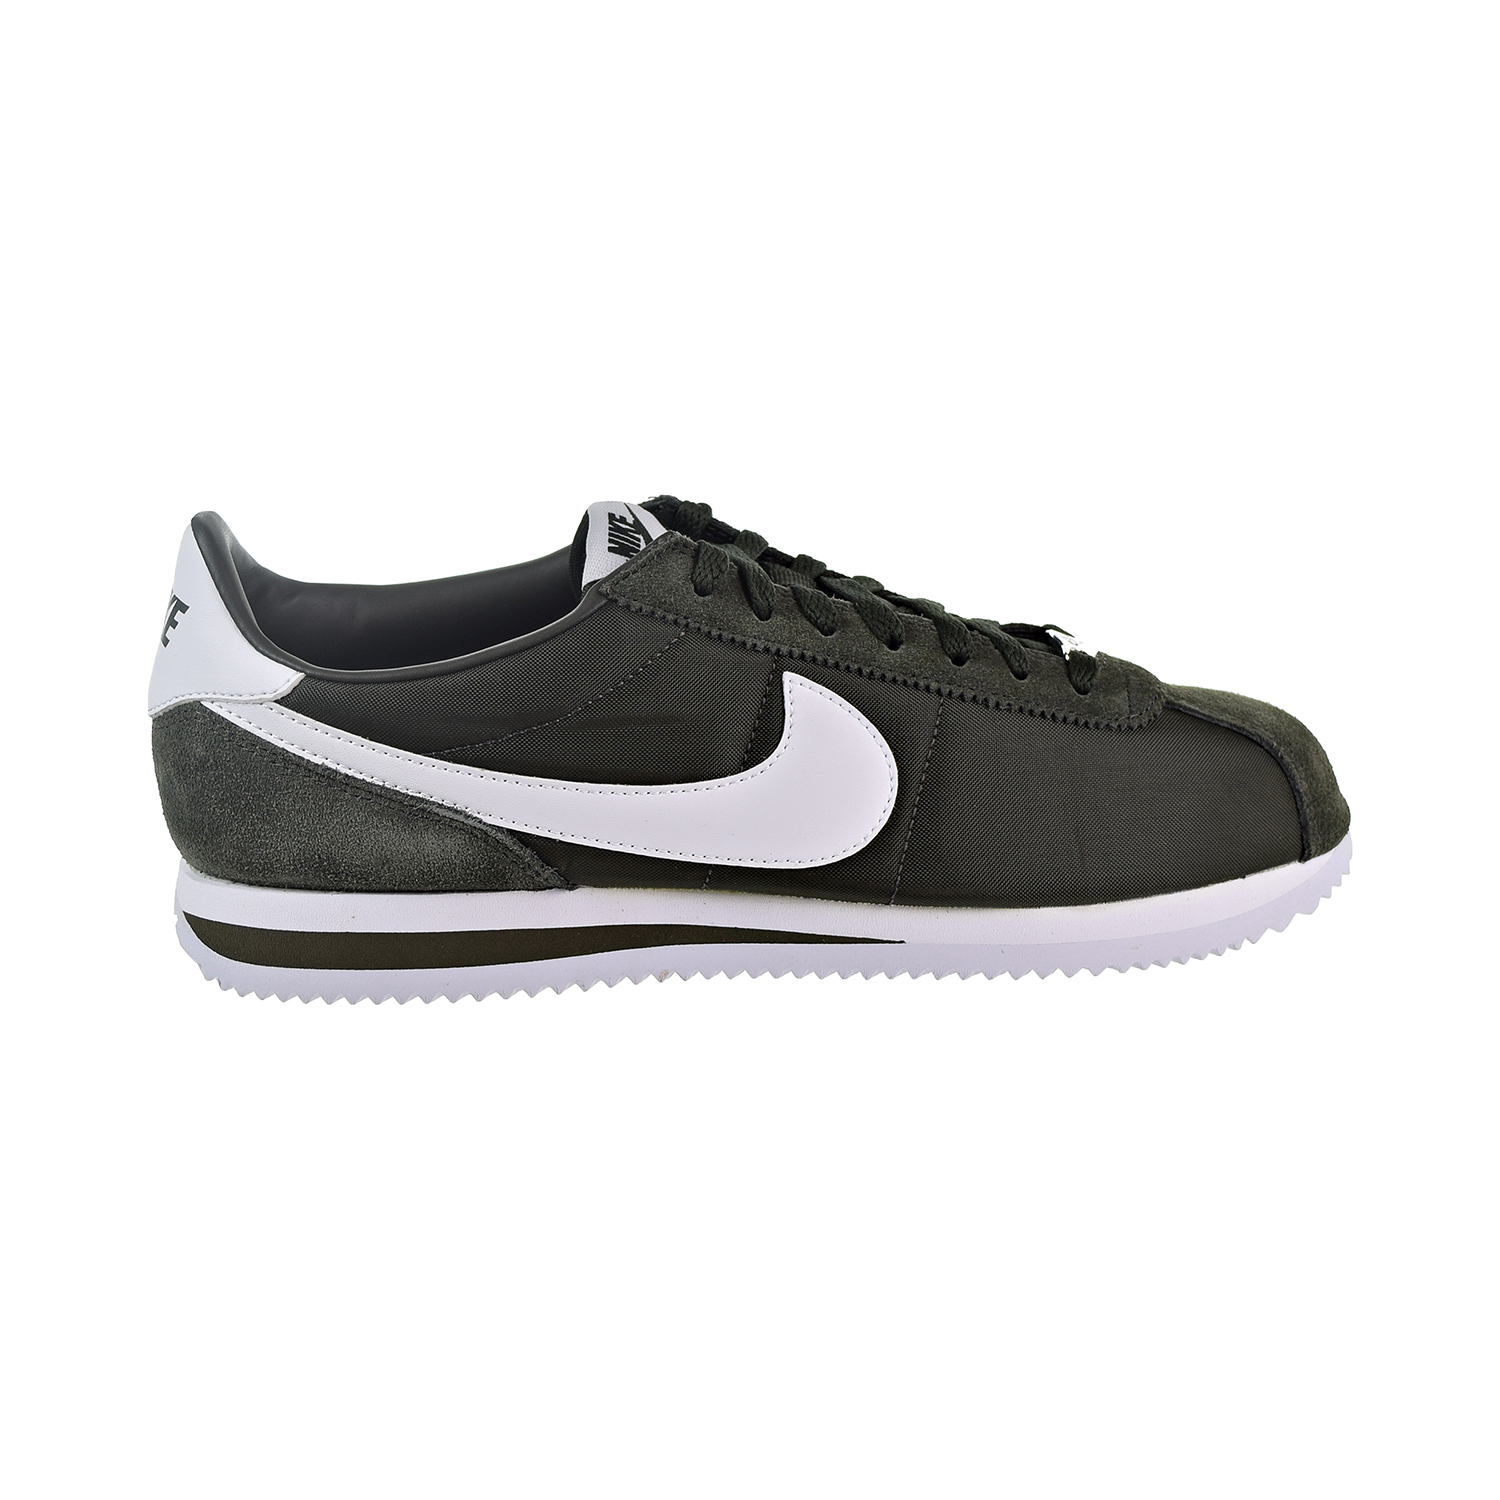 hot sale online 857c9 bd3b8 Details about Nike Cortez Basic Nylon Men's Shoes Sequoia/White 819720-301